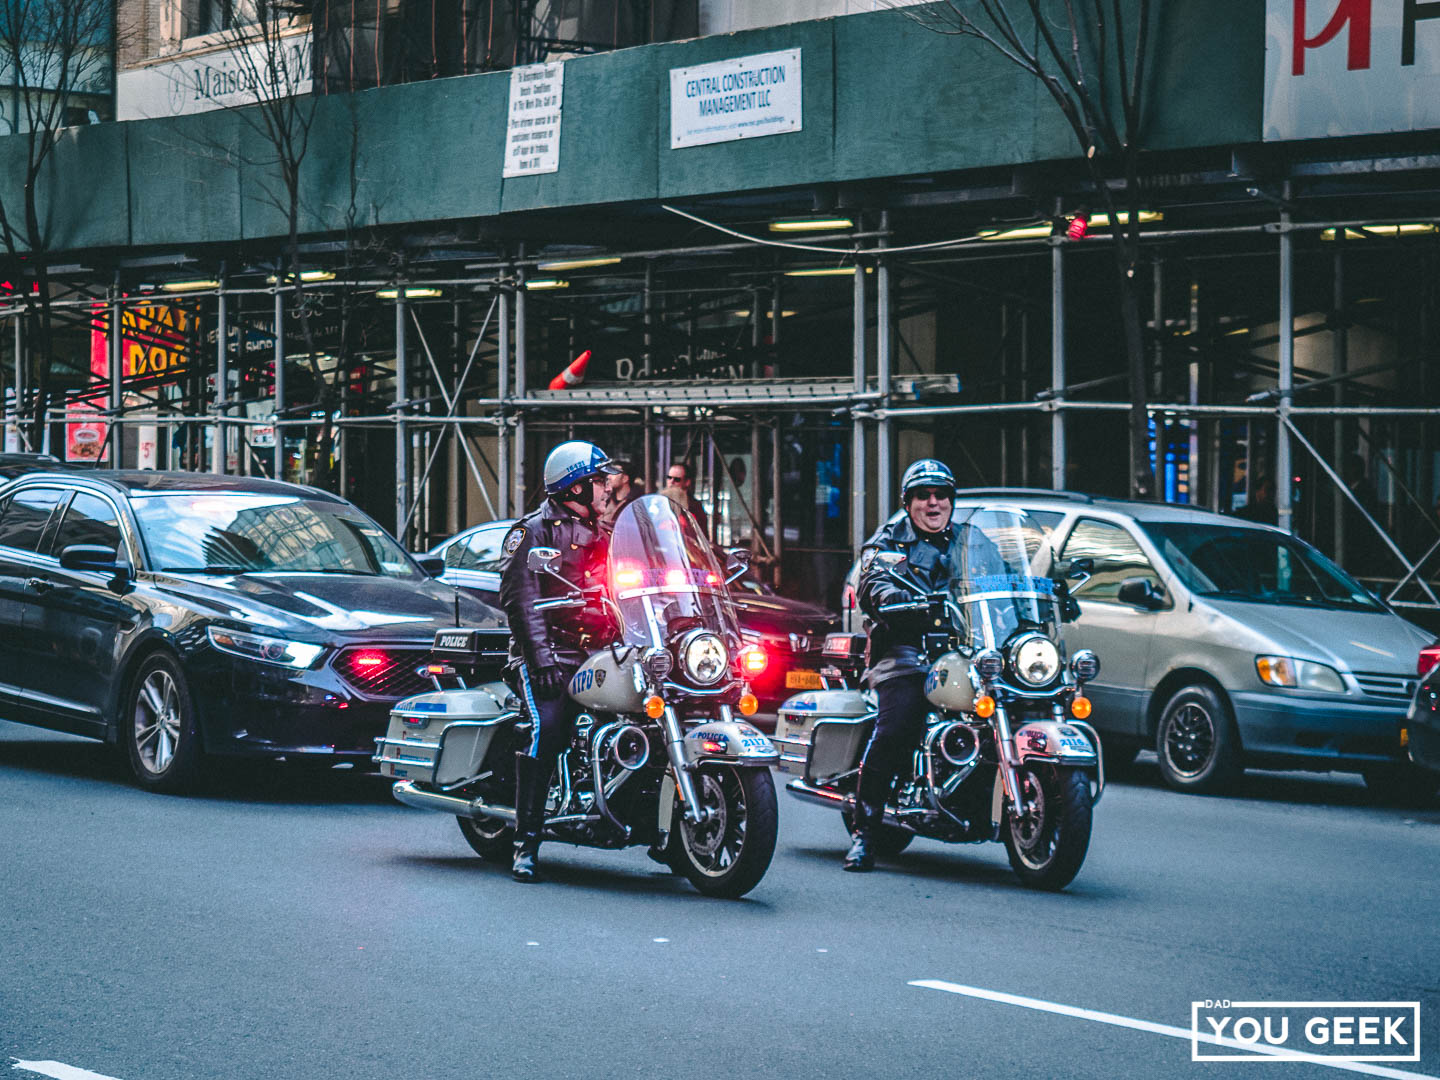 NYPD Motorcycle outriders